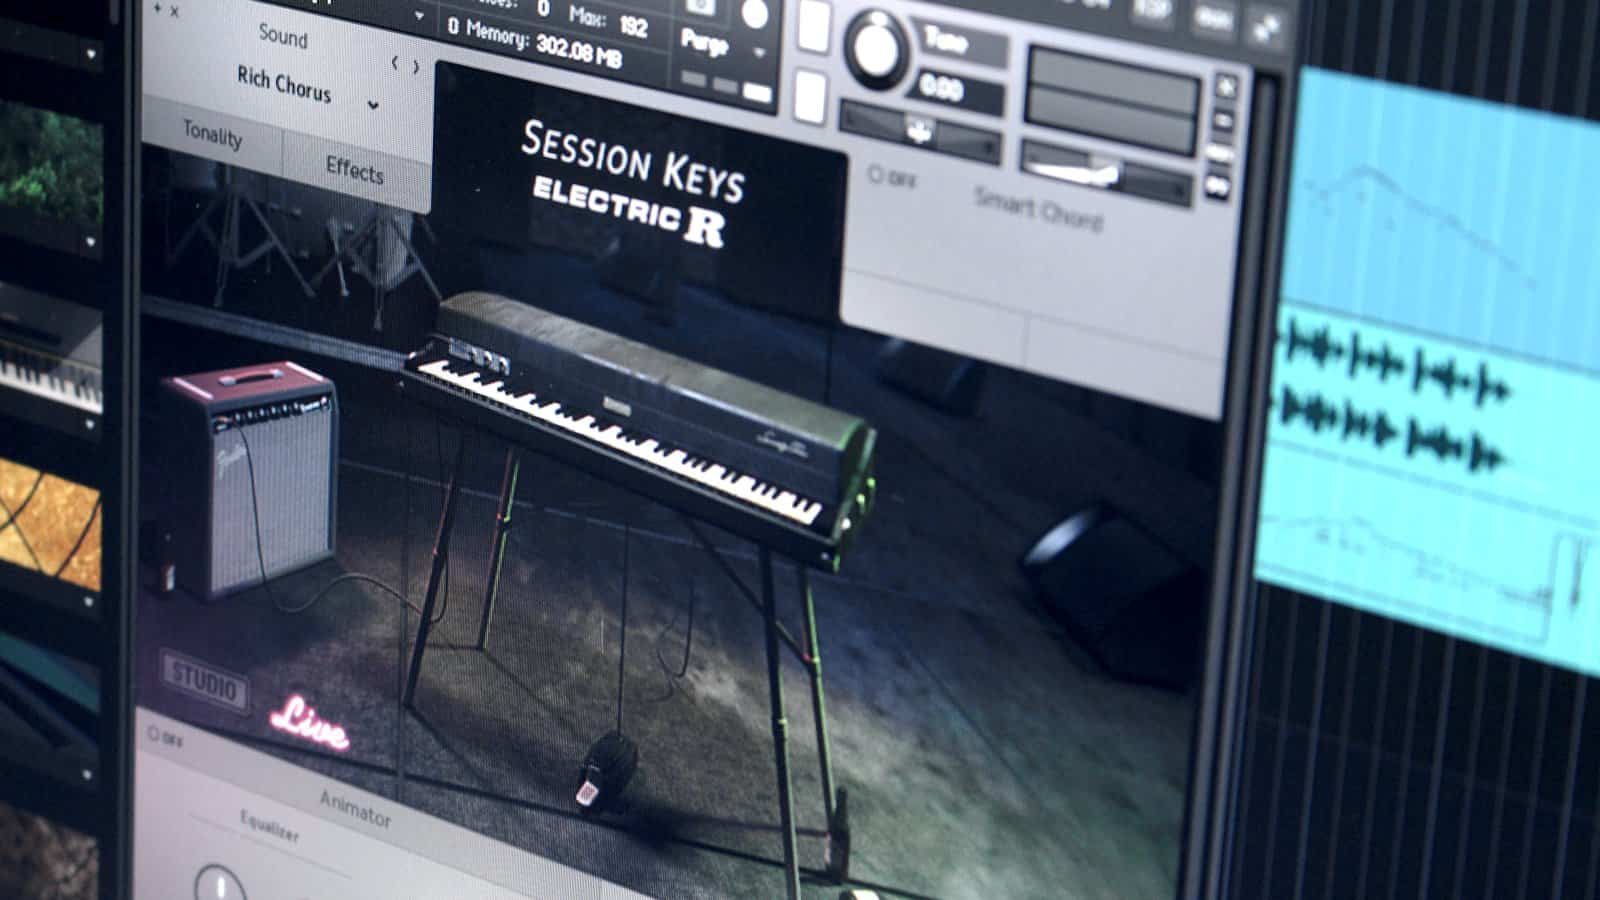 e-instruments-session-keys-electric-r-live